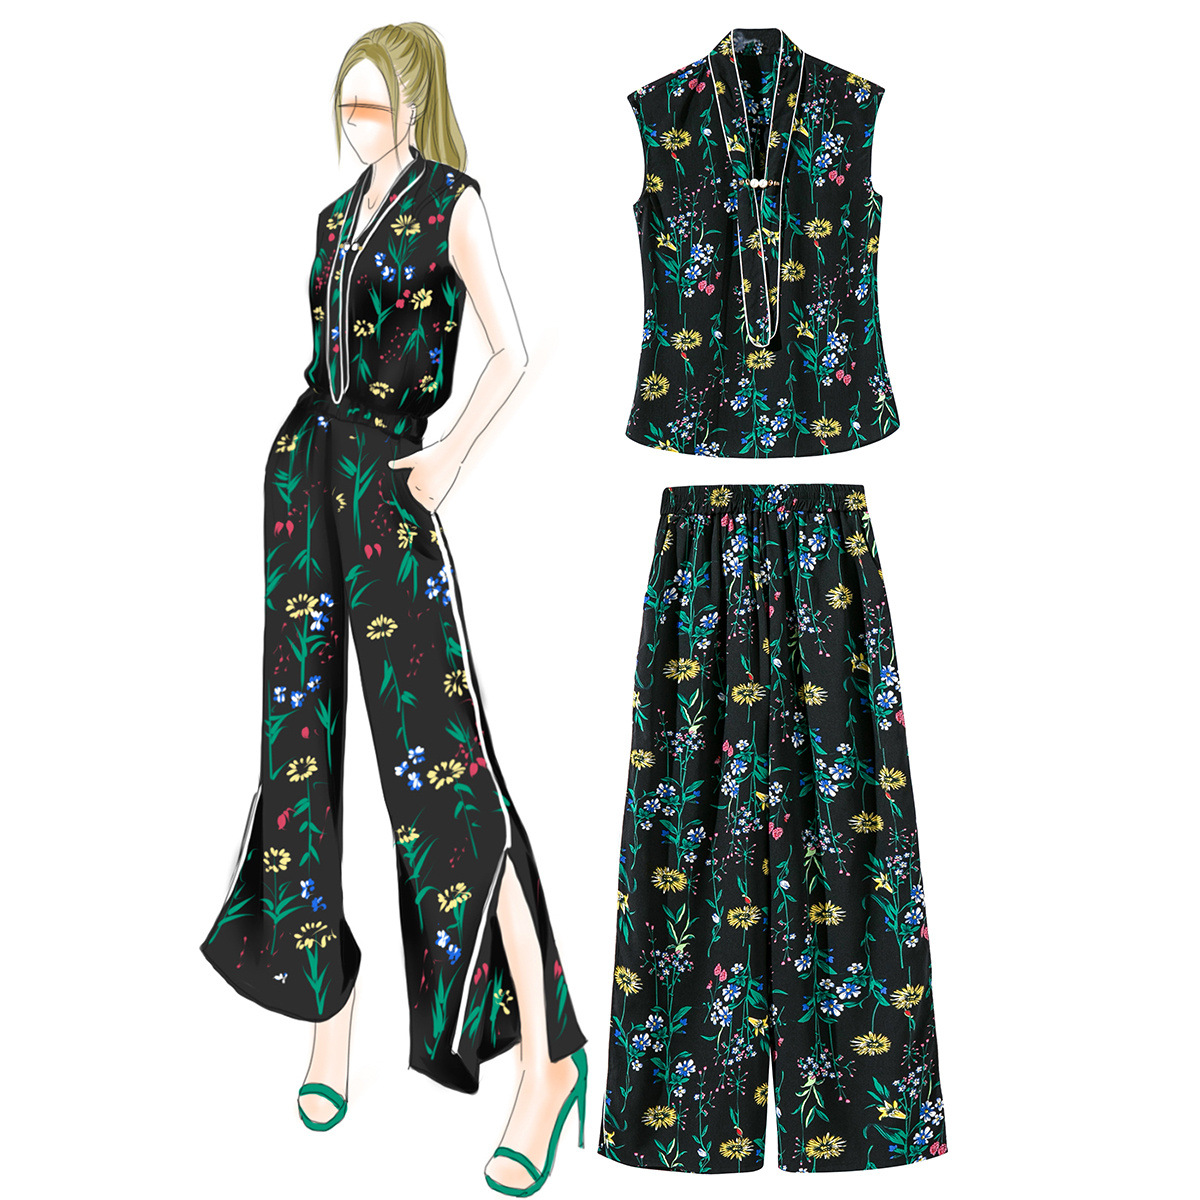 2018 Appliques Rushed Summer New Style Printed Tie Lacing, Bead Tightness, Wide Leg Pants Suit Boutique Women's Clothing 962404